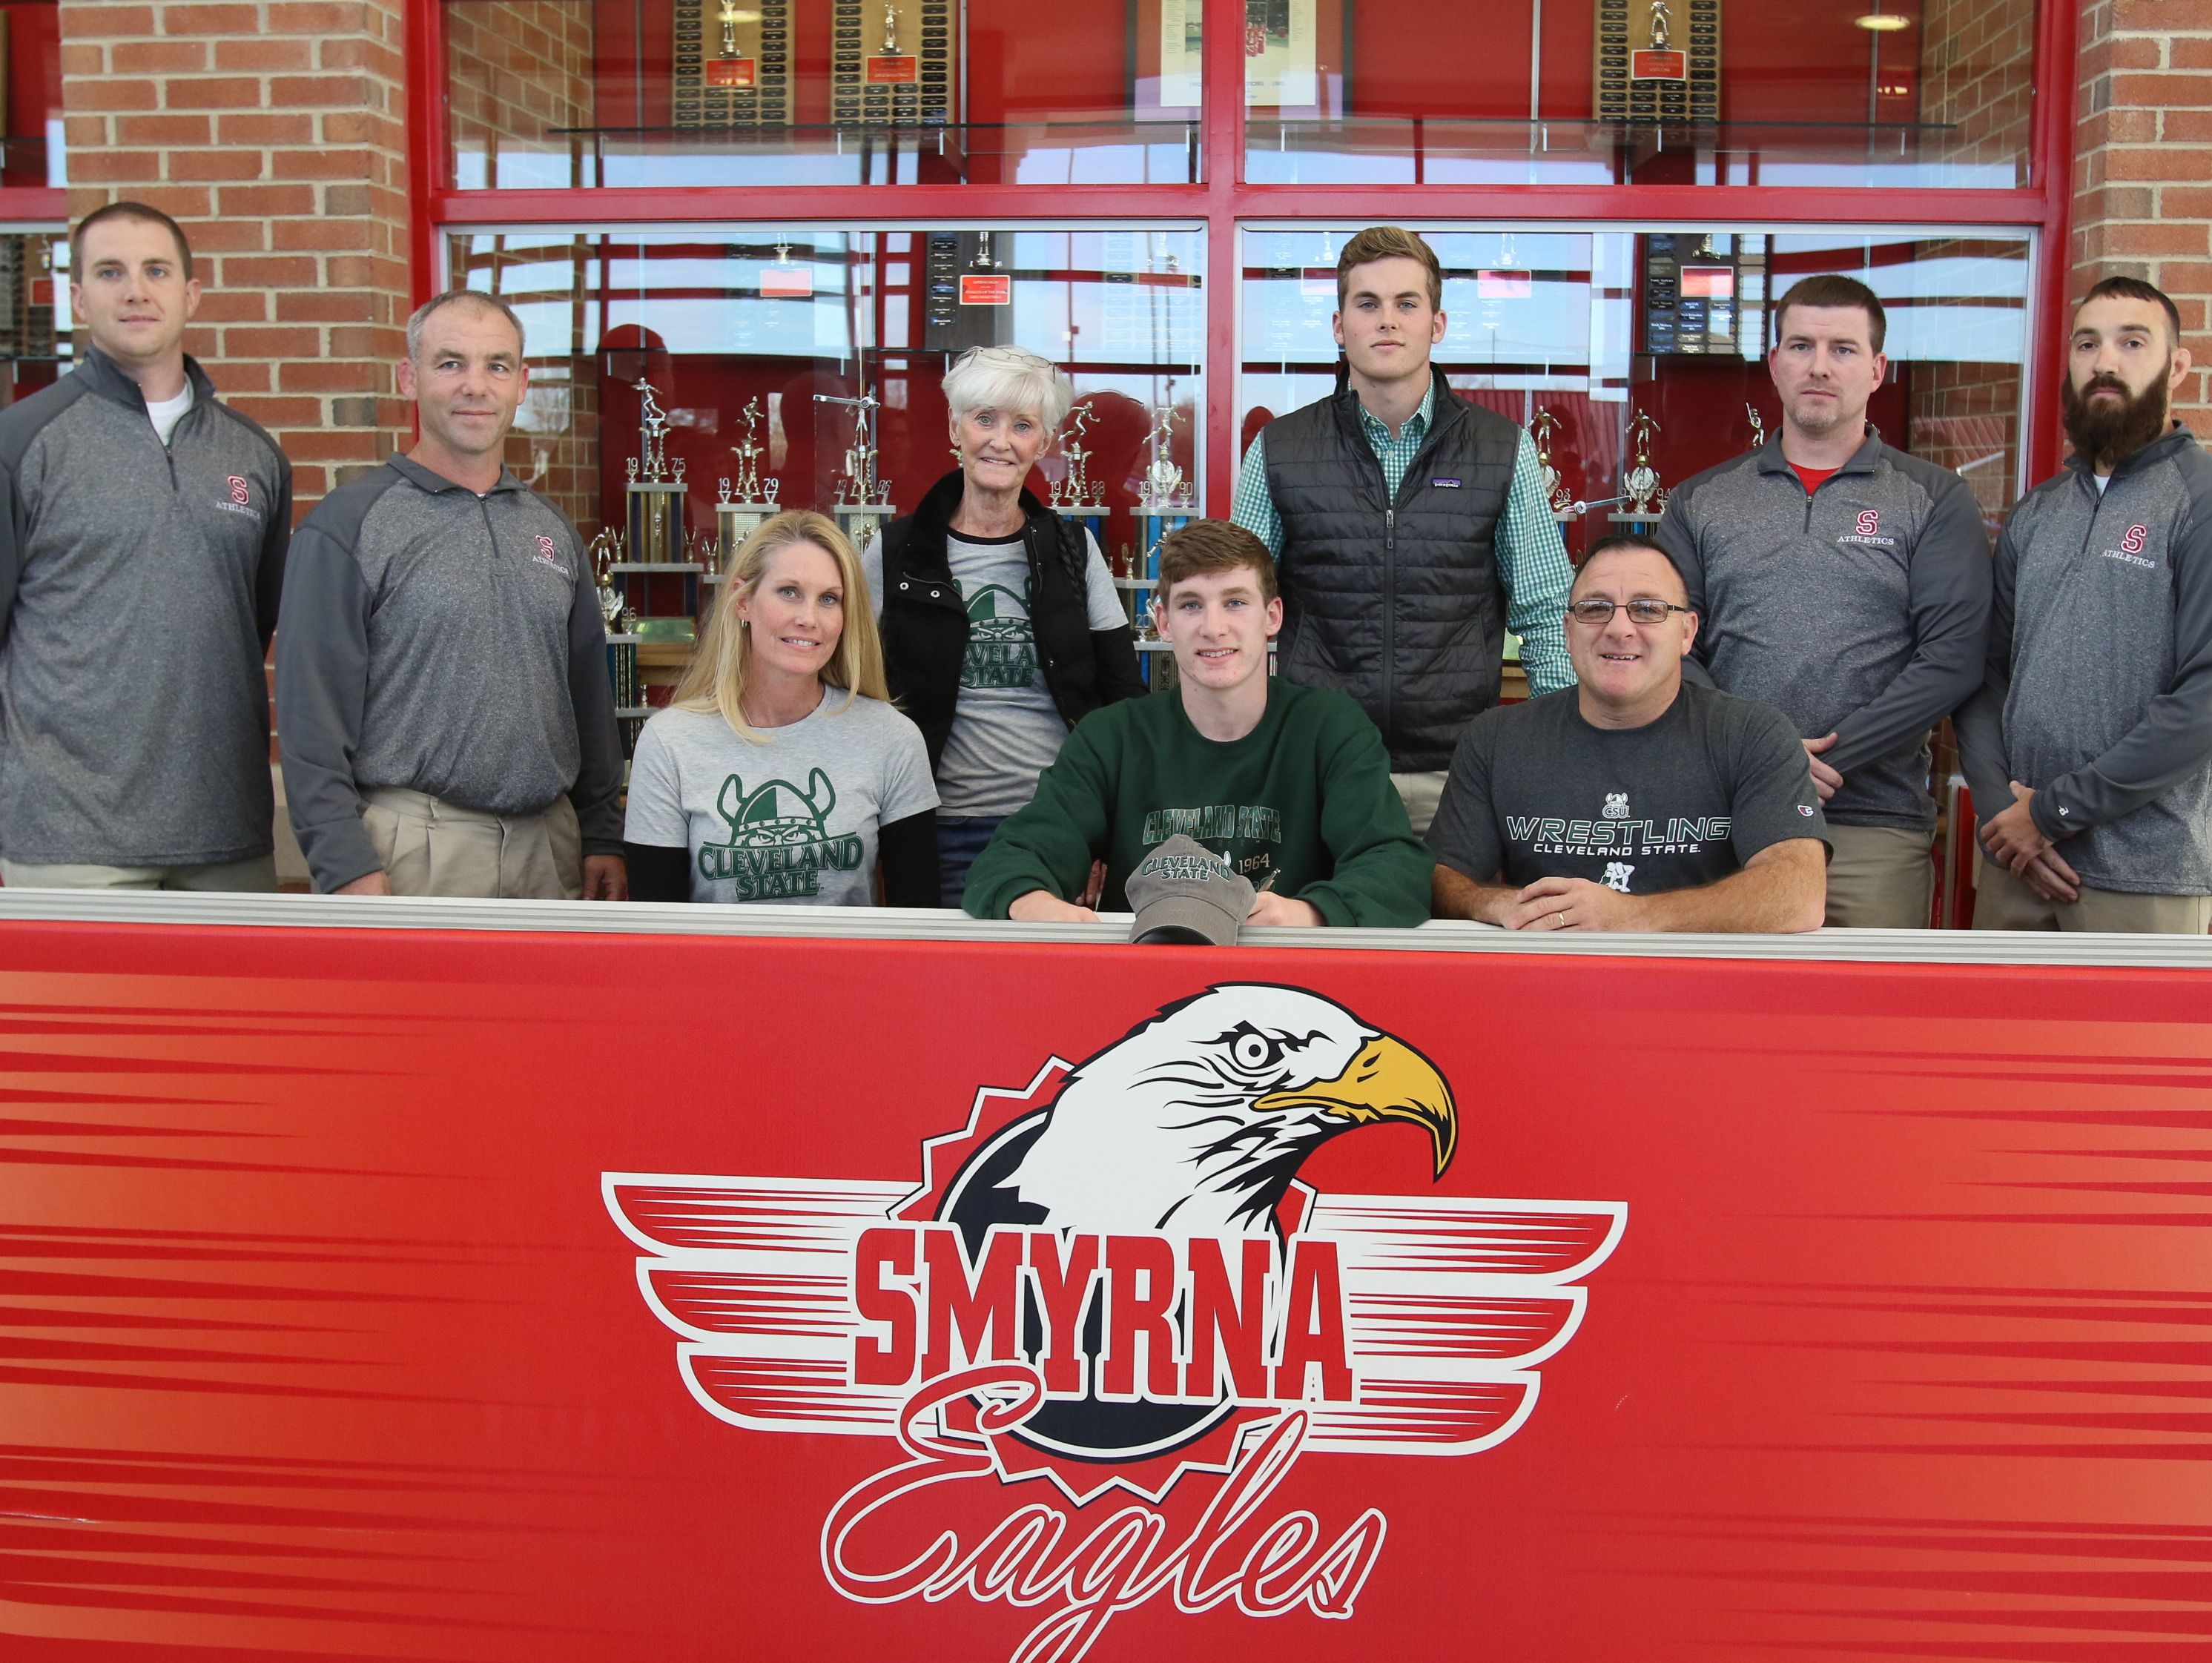 Smyrna wrestler Chase Archangelo is surrounded by his family and coaches while signing a National Letter of Intent with Cleveland State.